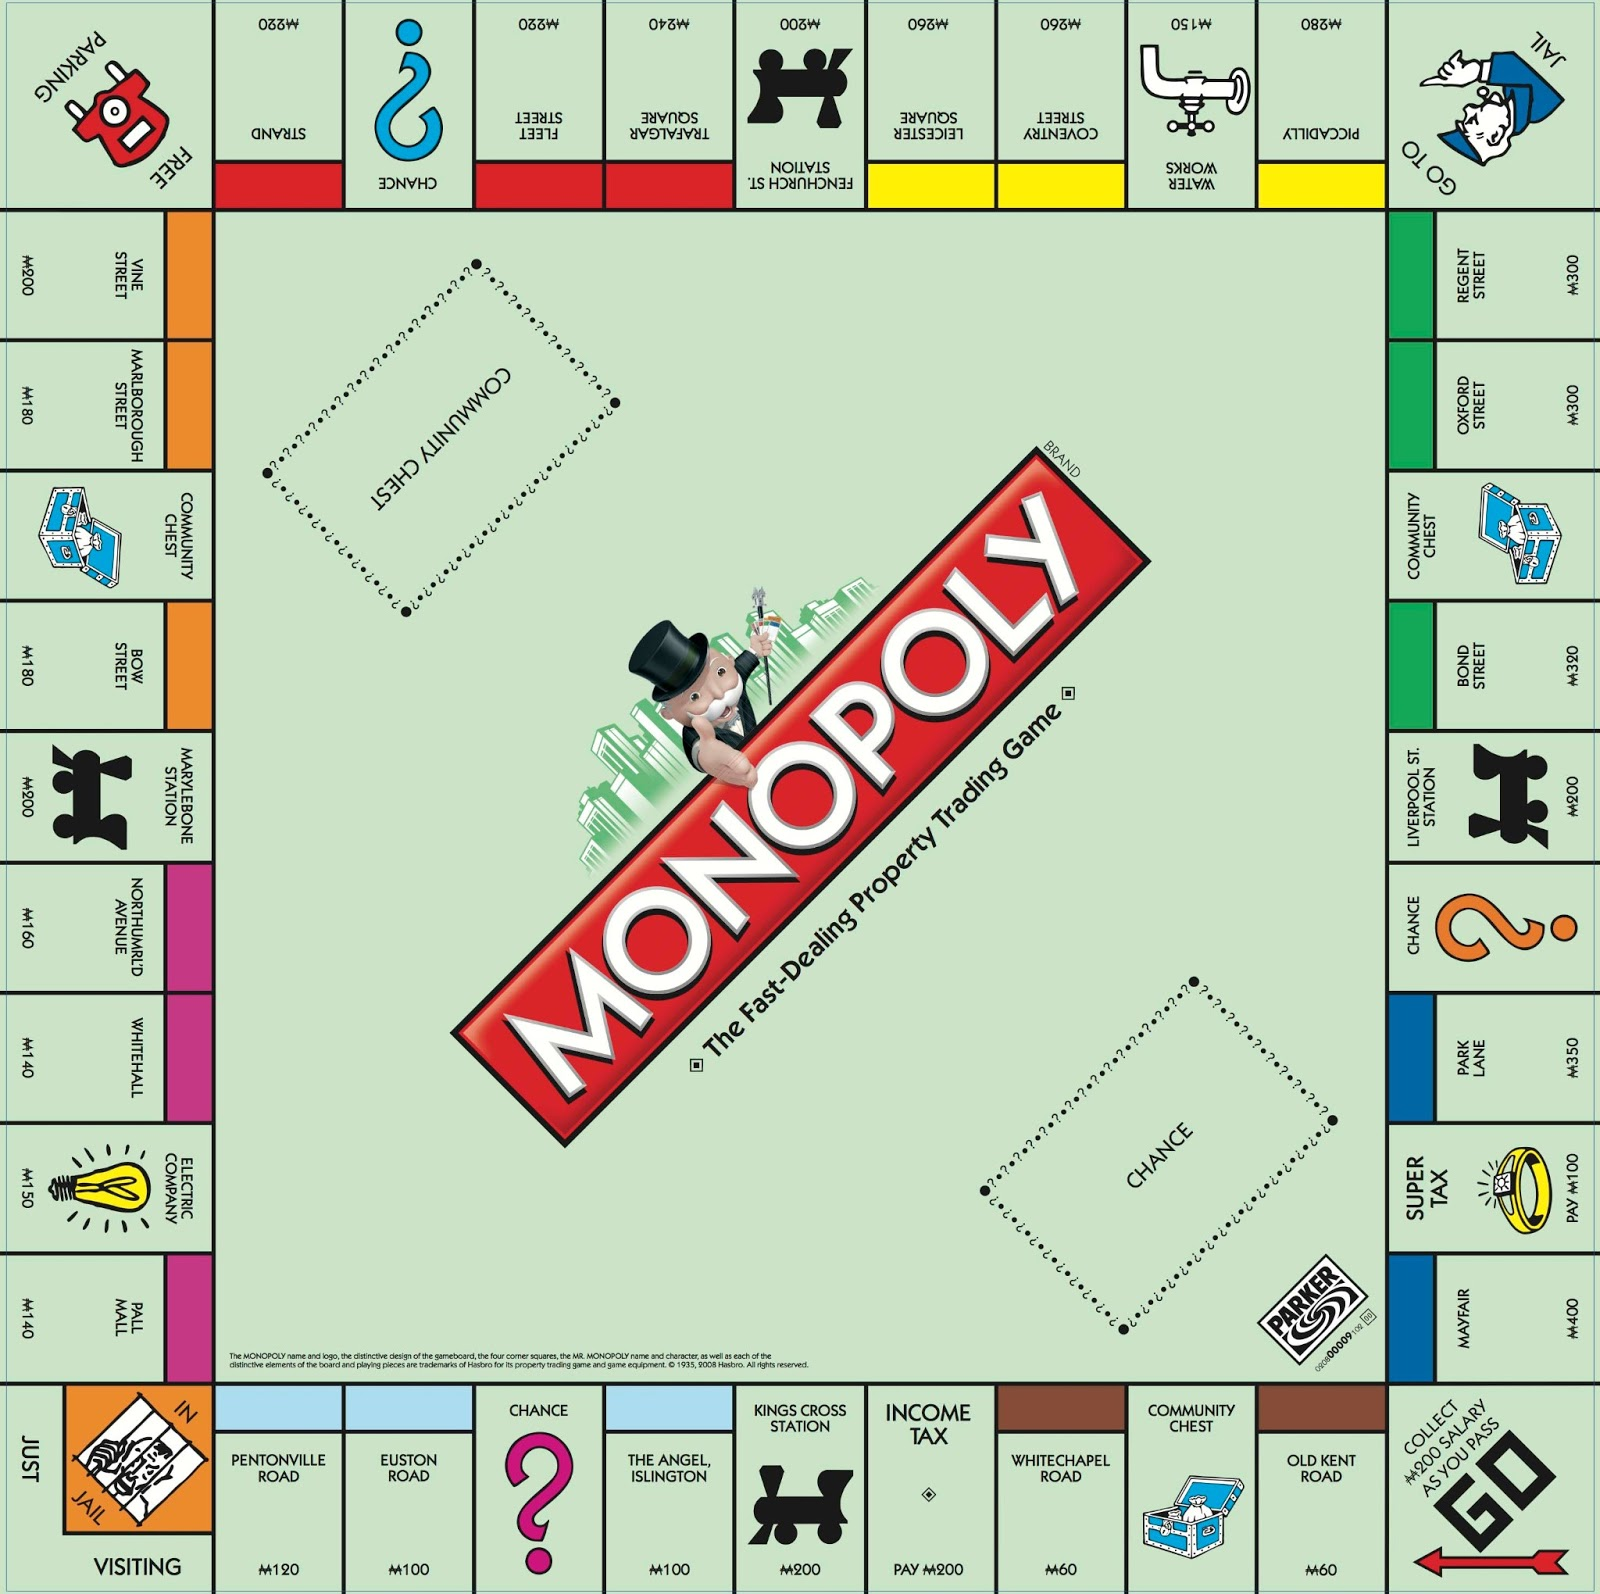 monopoly - definition - What is